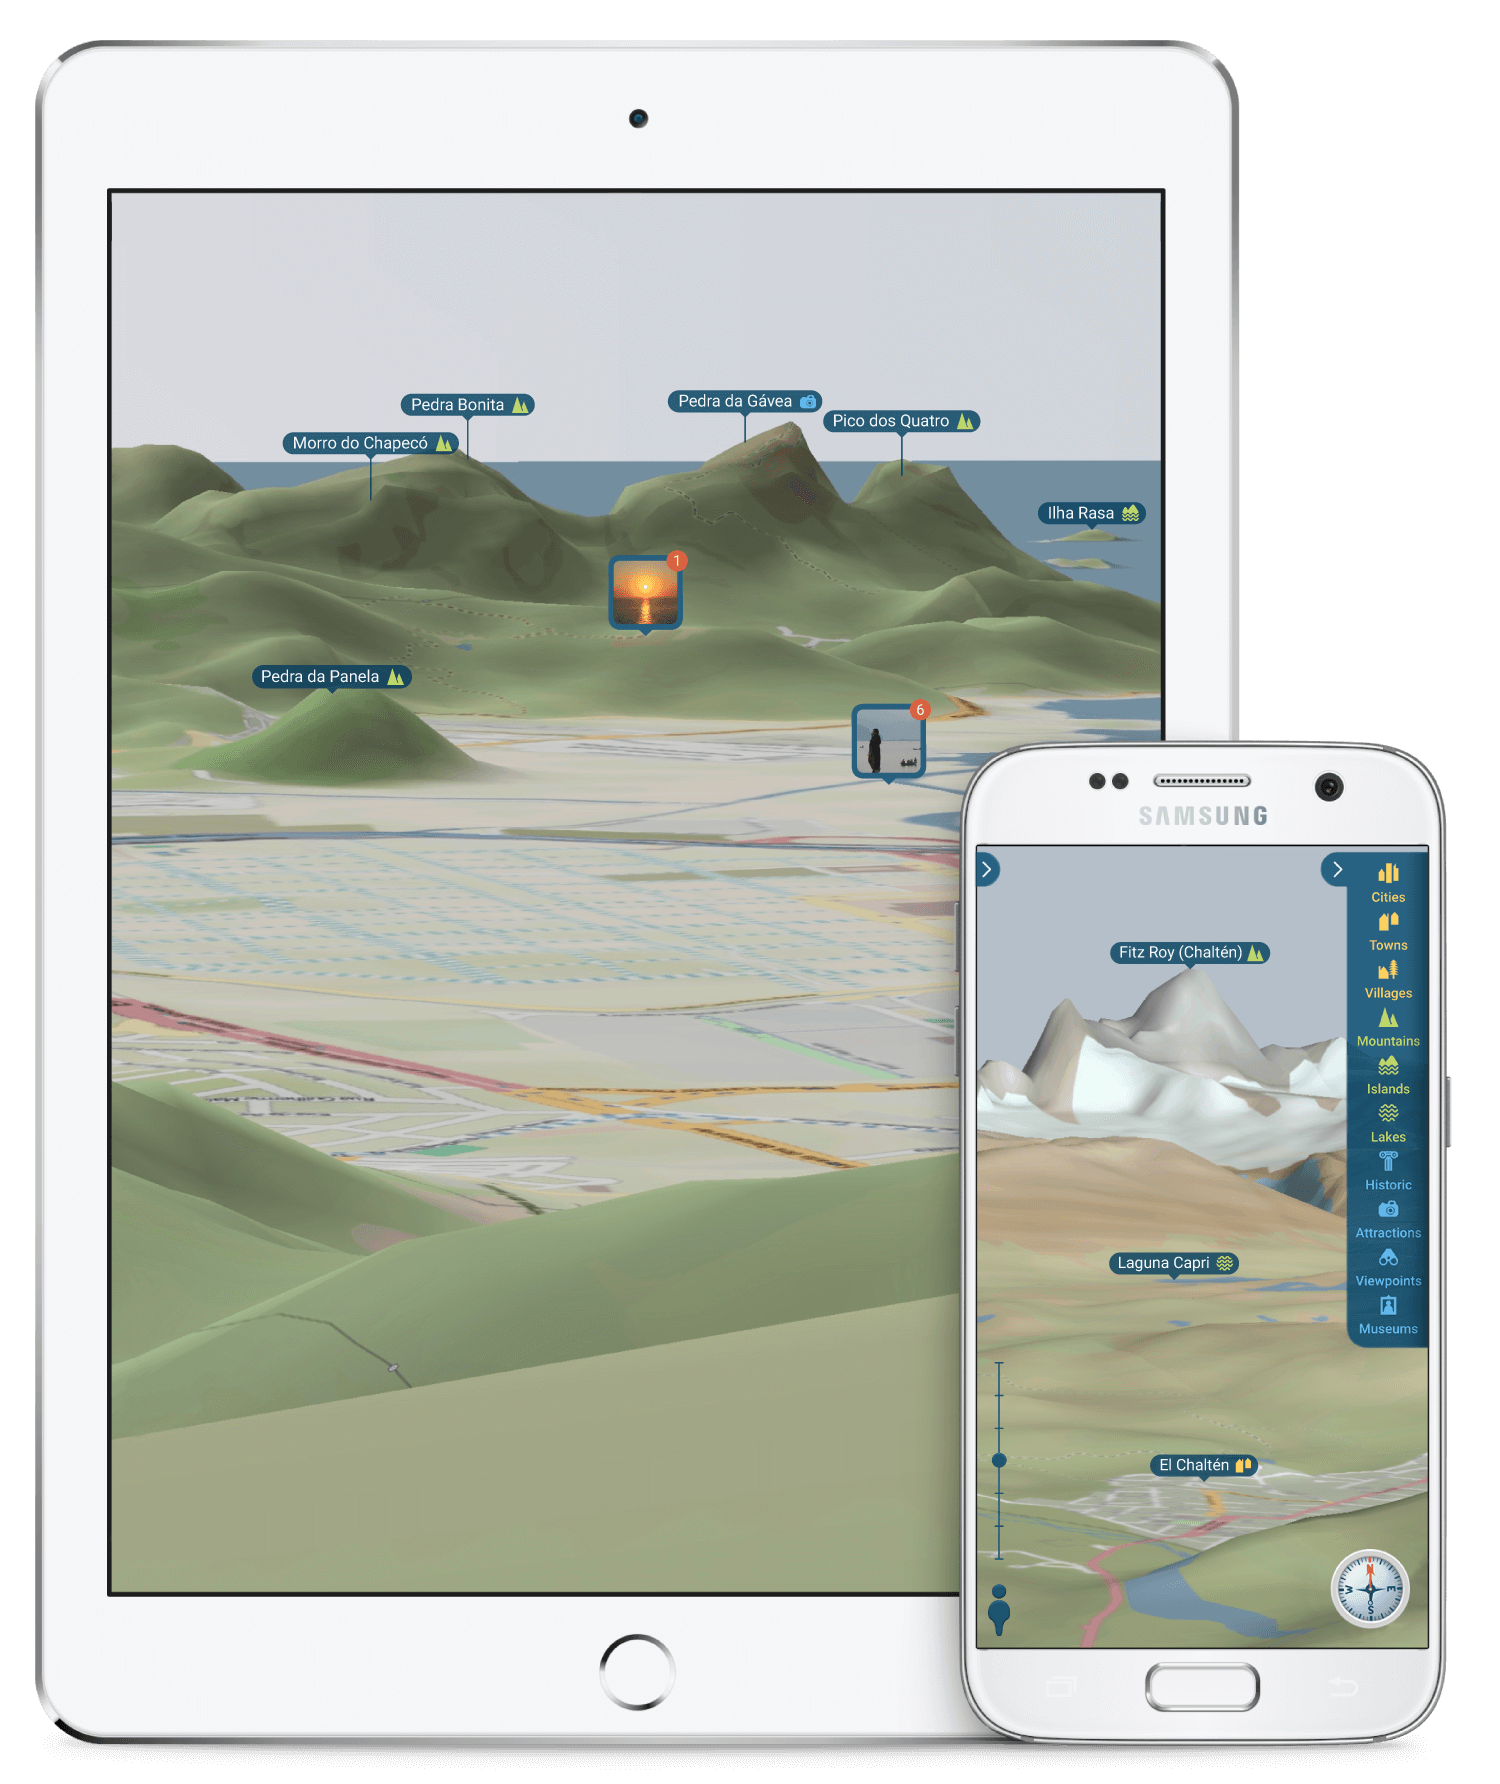 Built with Qt - eyeMaps - augmented reality 3D maps - tablet